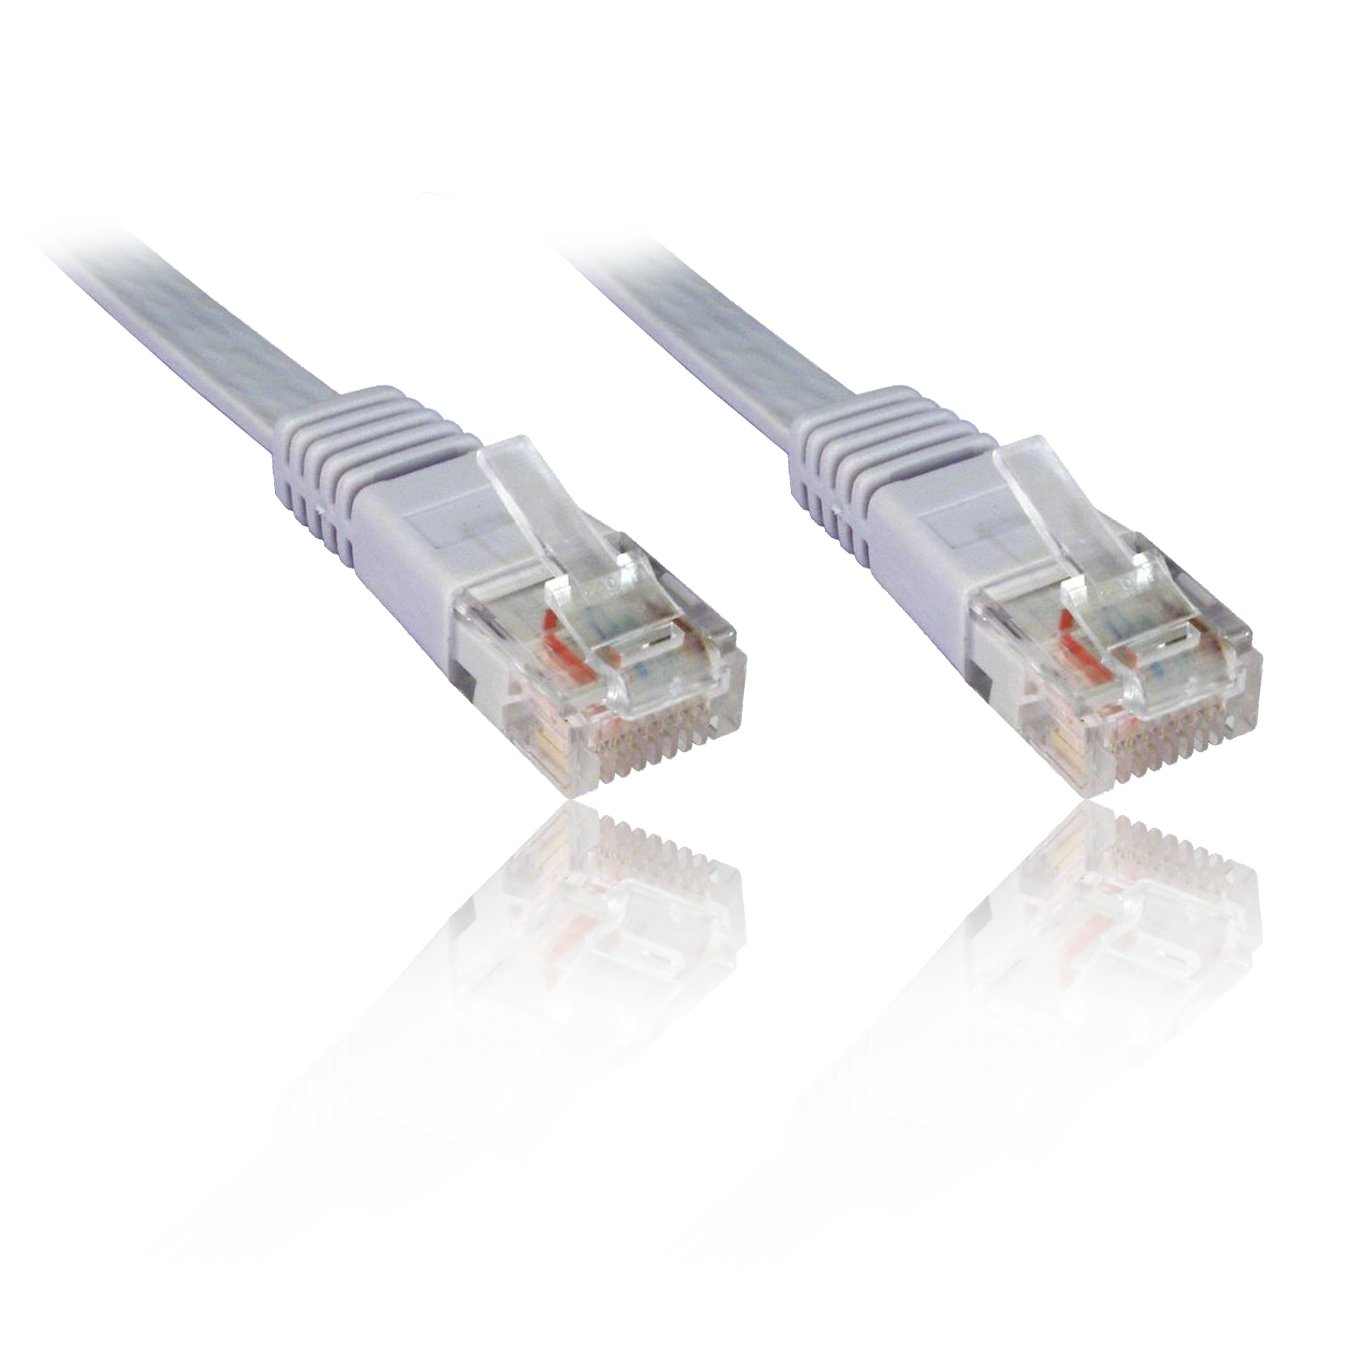 10m Flat Cat5e Ethernet Patch Cable Grey Low Smoke Zero Halogen Uk Wiring Colours Computers Accessories